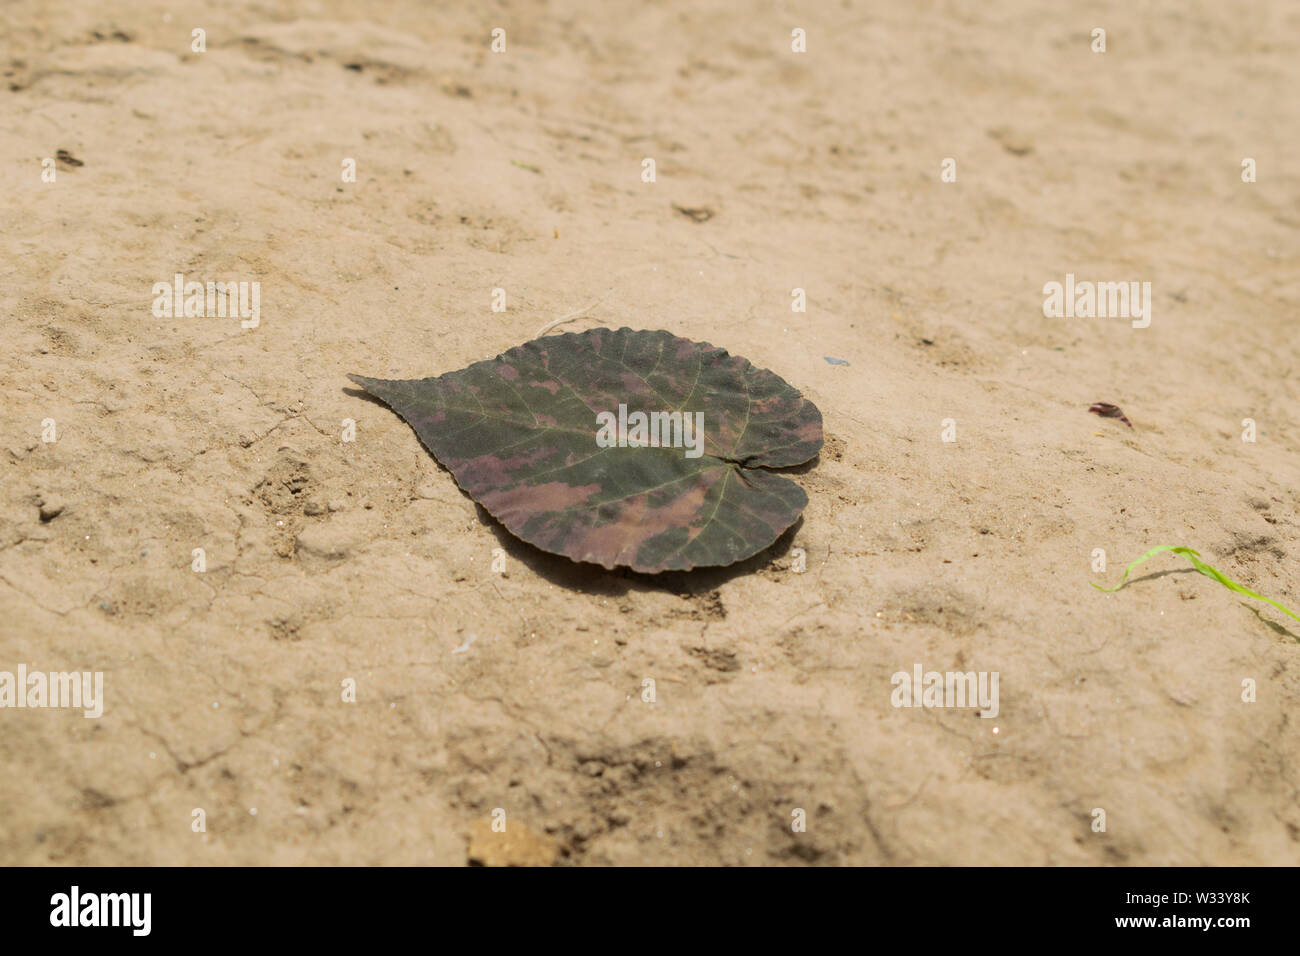 close up of a dried leaf with blurred background,close up of dry leaf on earth. Stock Photo